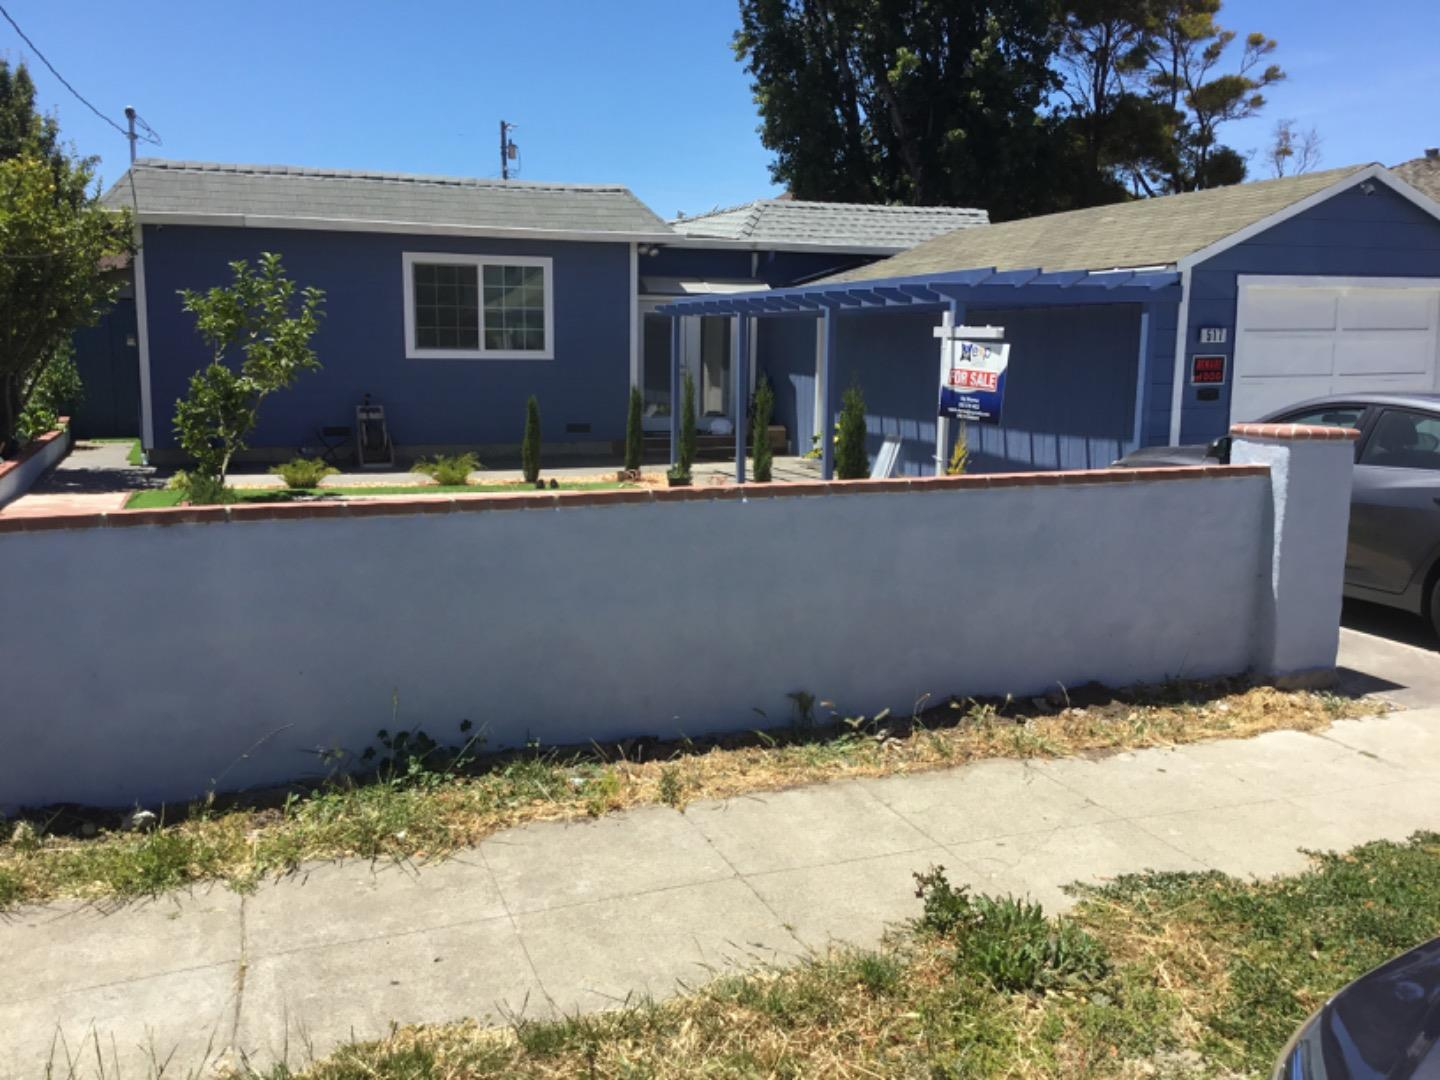 The house is situated in nice neighborhood of San Bruno area,Hardwood floor,separate living room,laundry room ,bonus room between garage and the house can be used as gym.two extra storage room,House is close to Belle Air Elementary School ,Easy access to 101 and 280 freeway,close to SFO Airport , Bart station ,cal train station and Tanforan  mall and major grocery stores.There is no back yard as the house is build all the way back to the fence.Recently  painted inside and outside , nice front yard BEWARE OF THE DOG.The buyers agents and the buyers must verify the sq footage and the bldg addition from CITY OF SAN BRUNO.